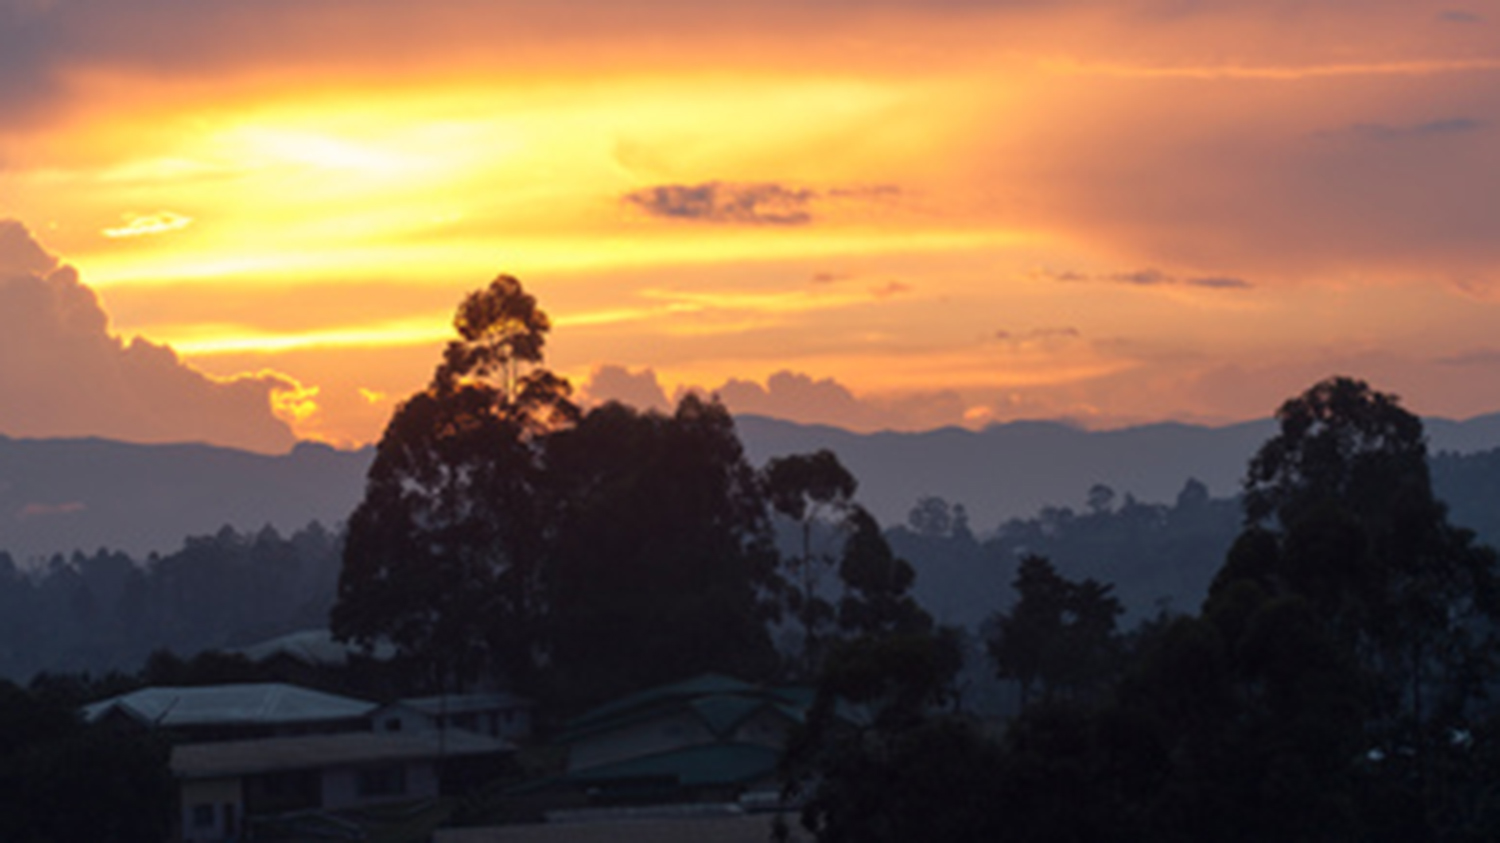 Sunset in Cameroon after the rainy season.